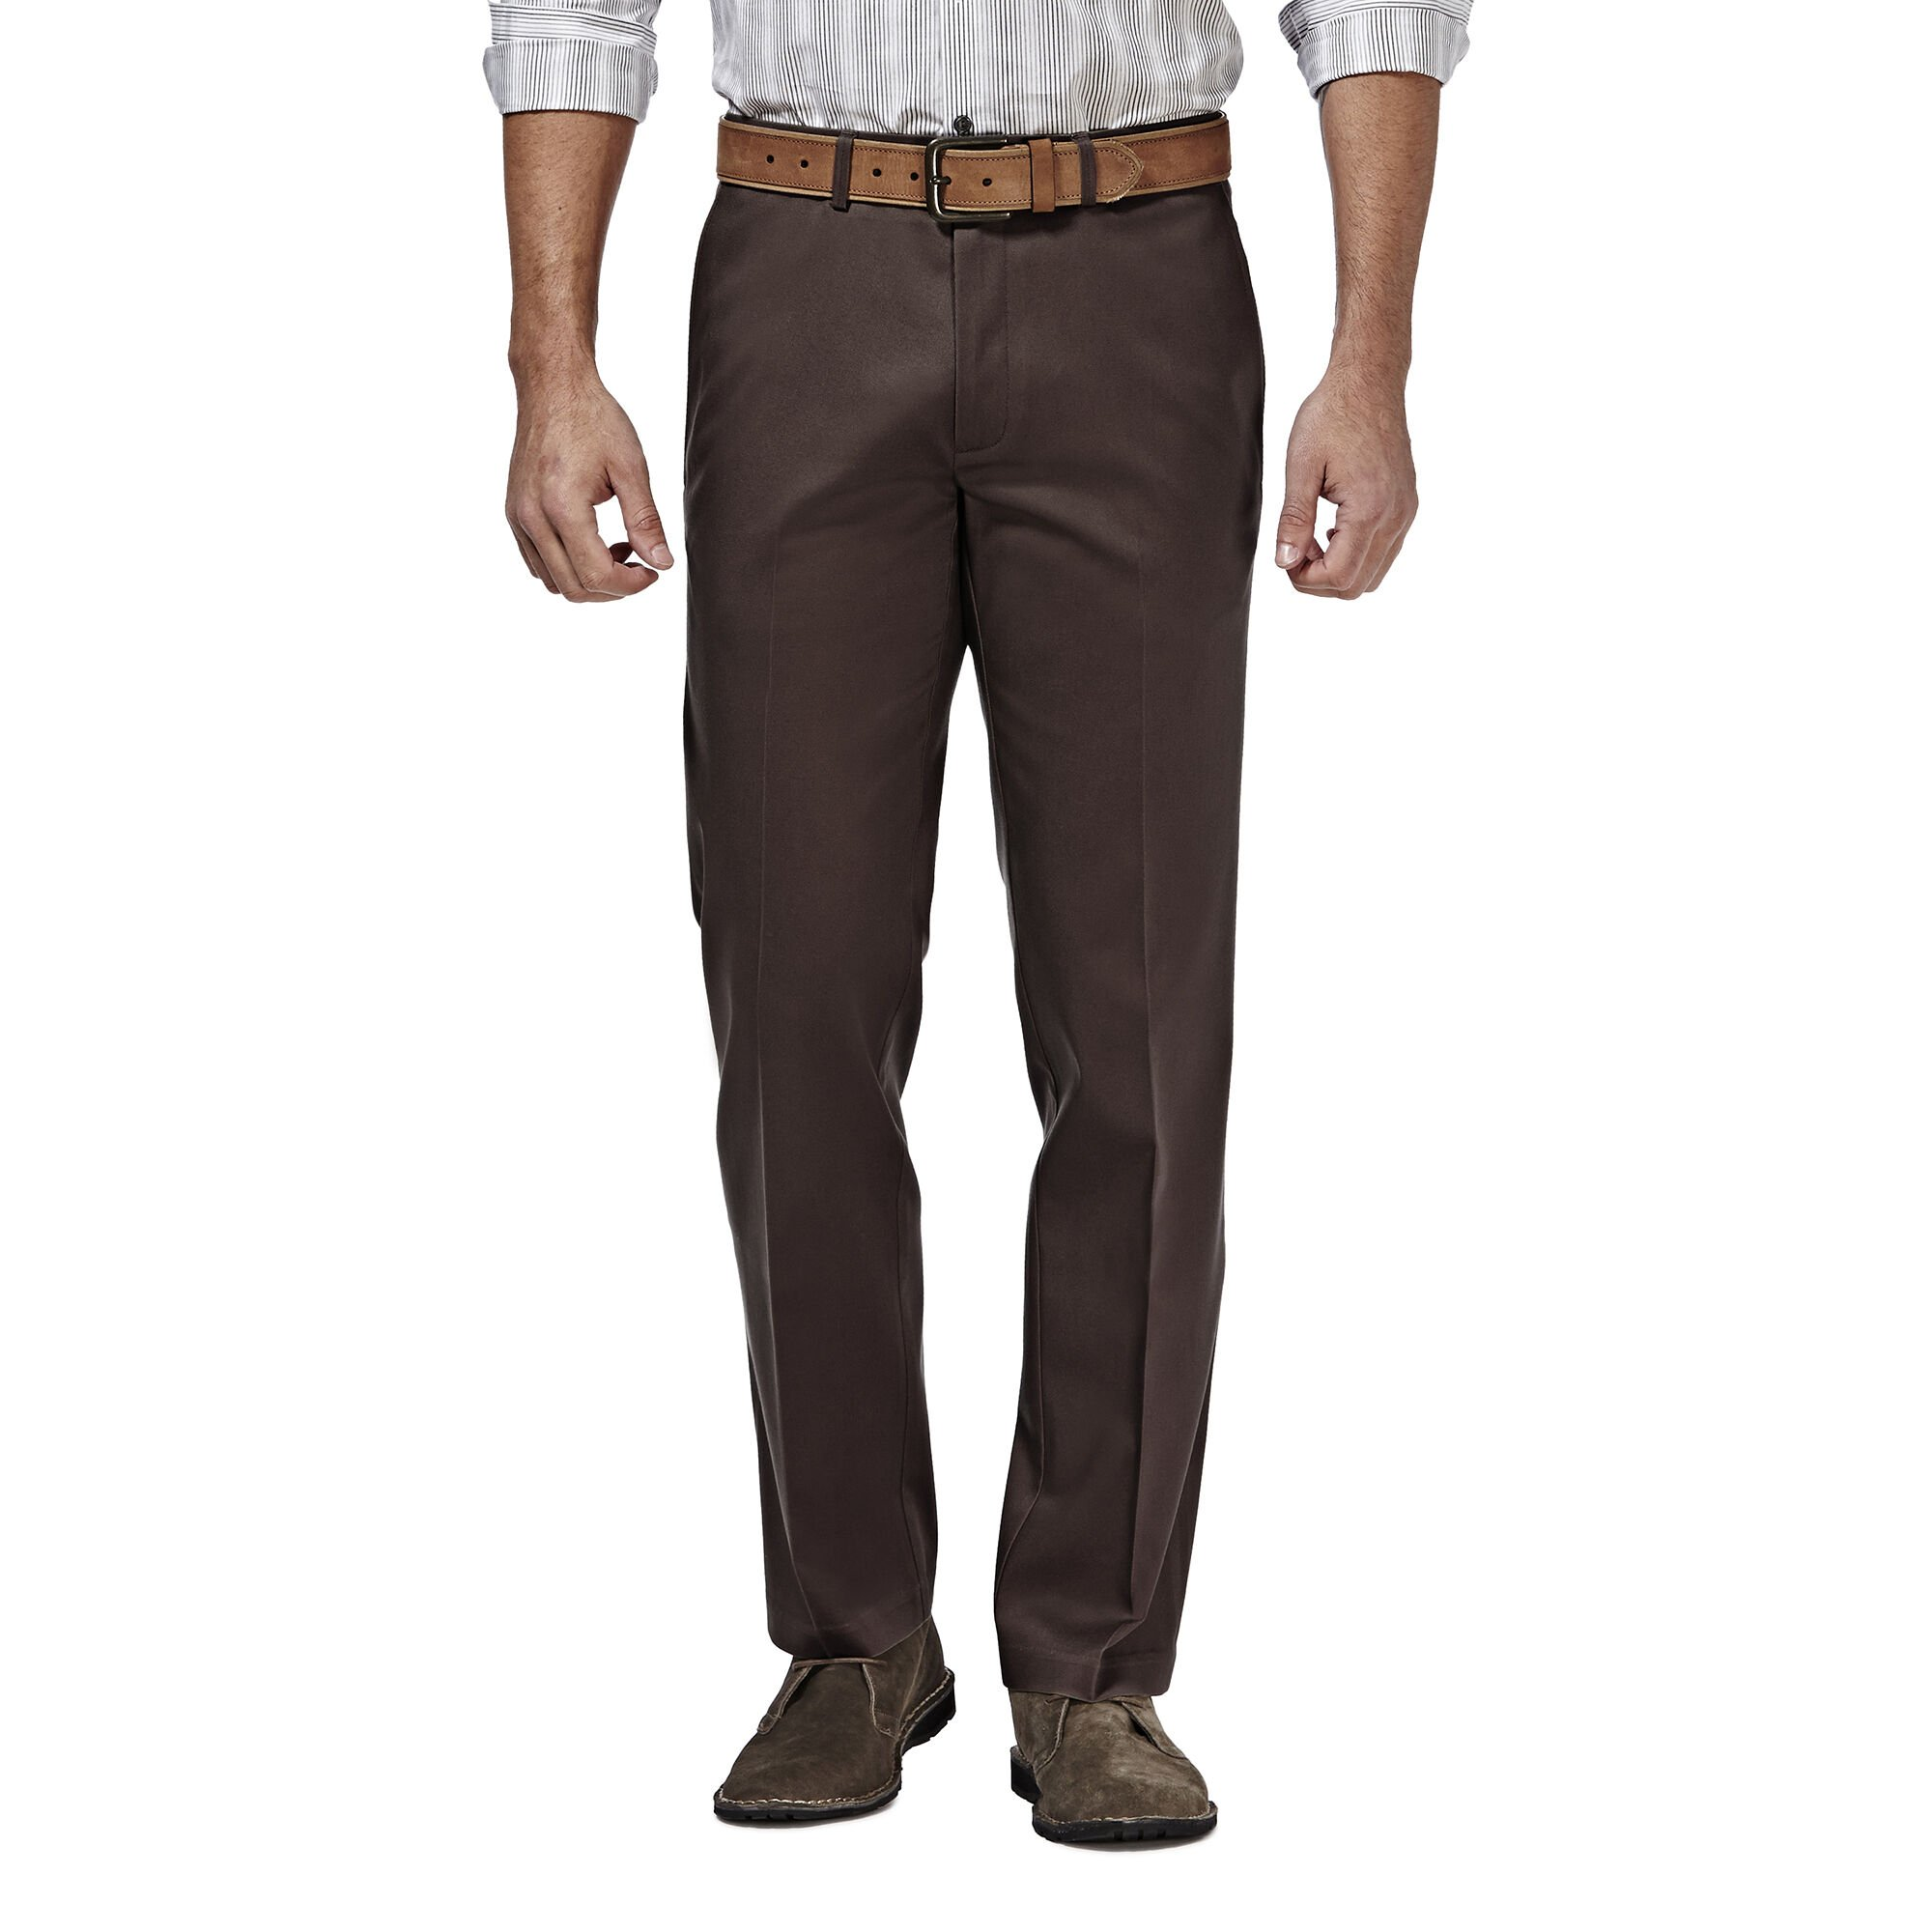 Cotton Dark Grey 36 Straight Fit Flat Front Haggar Men/'s Casual Chino Pants